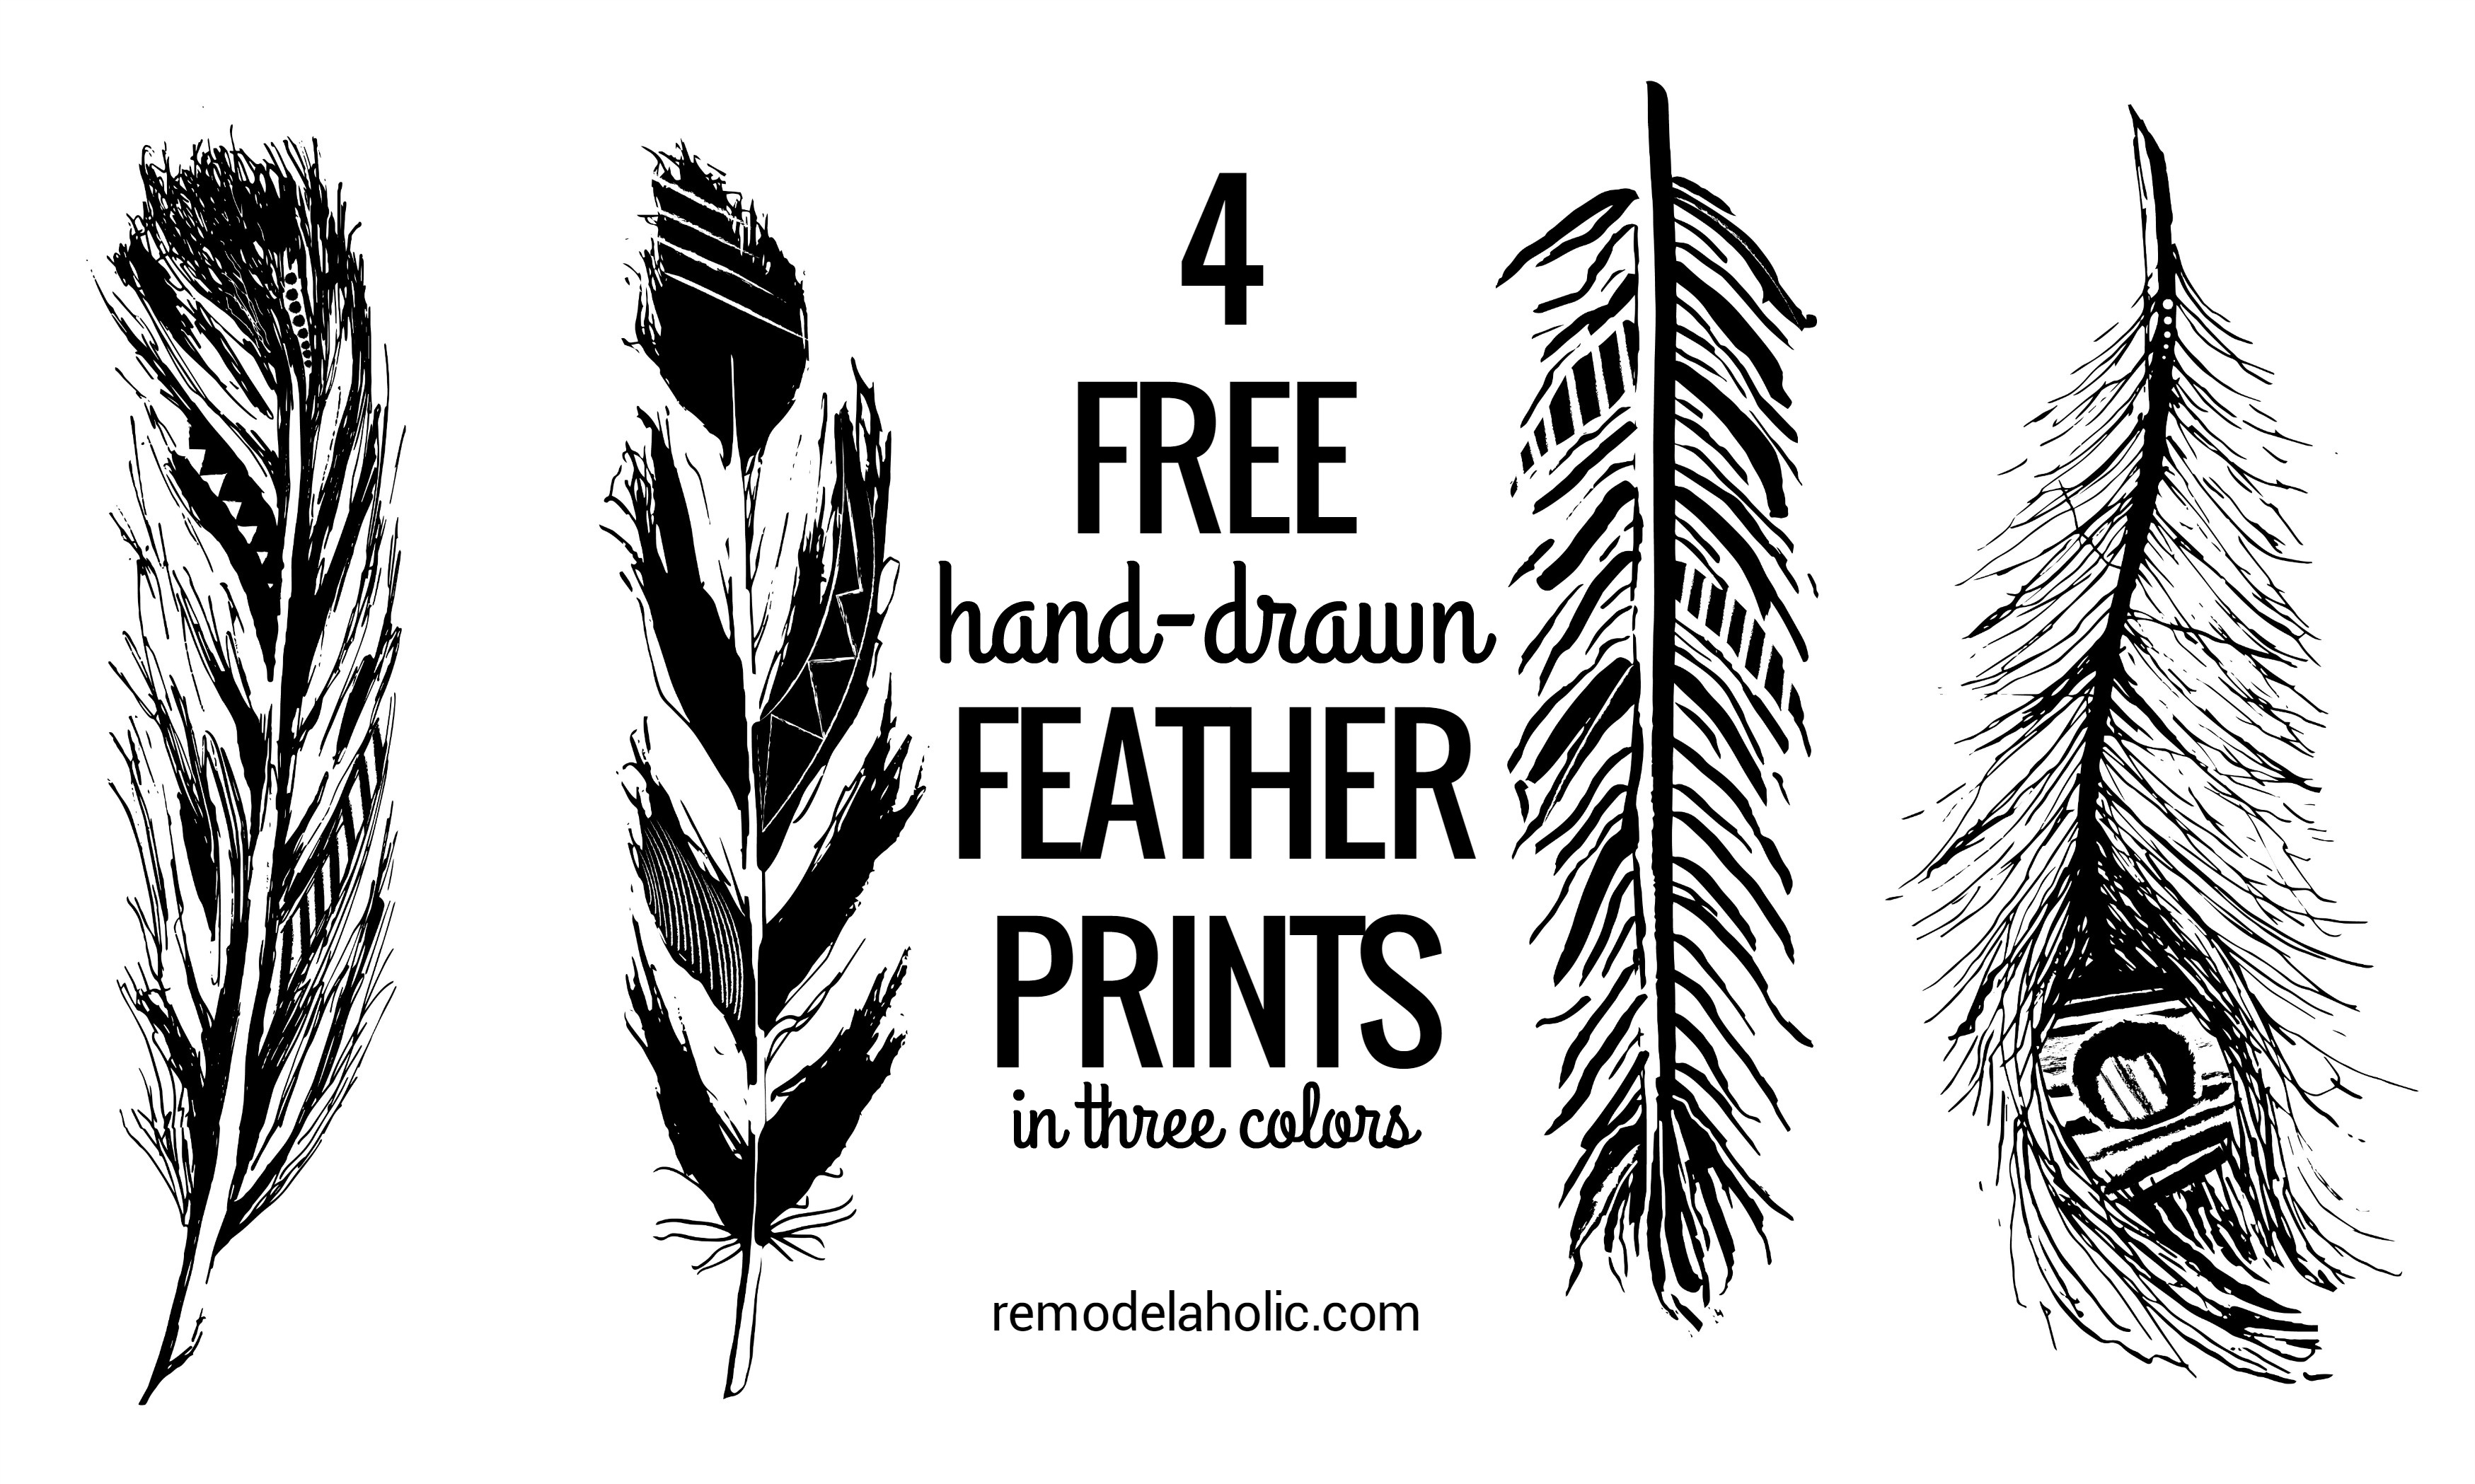 photo regarding Printable Feathers called Remodelaholic Feather Printables